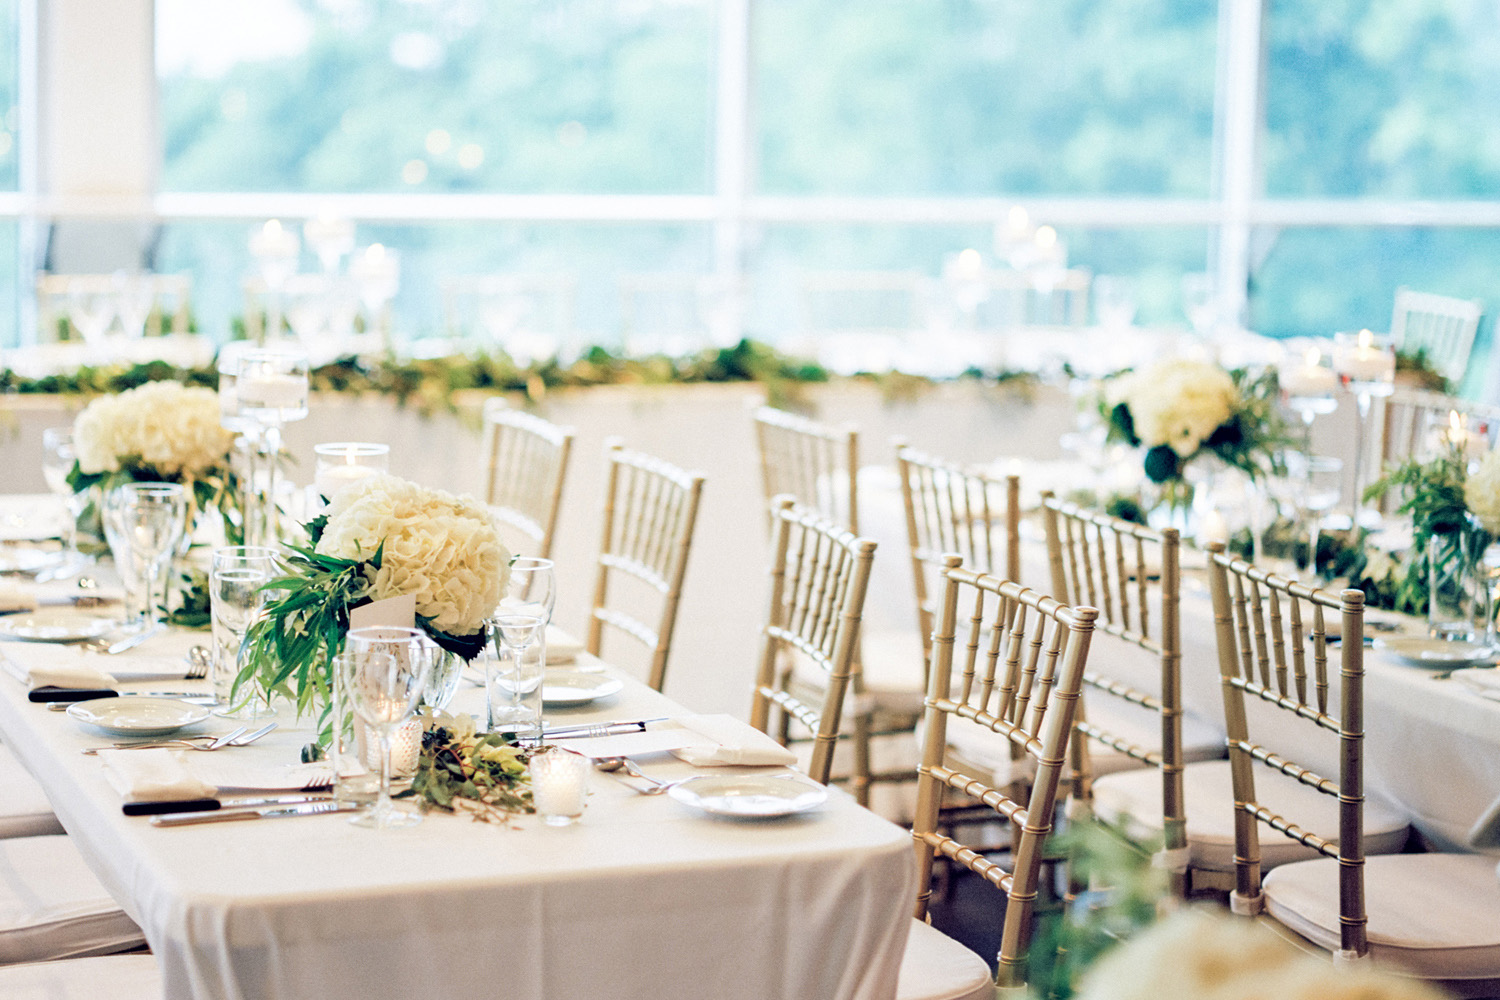 Mike Weir Winery | Jesse Jonas Photography | Tables & Chairs